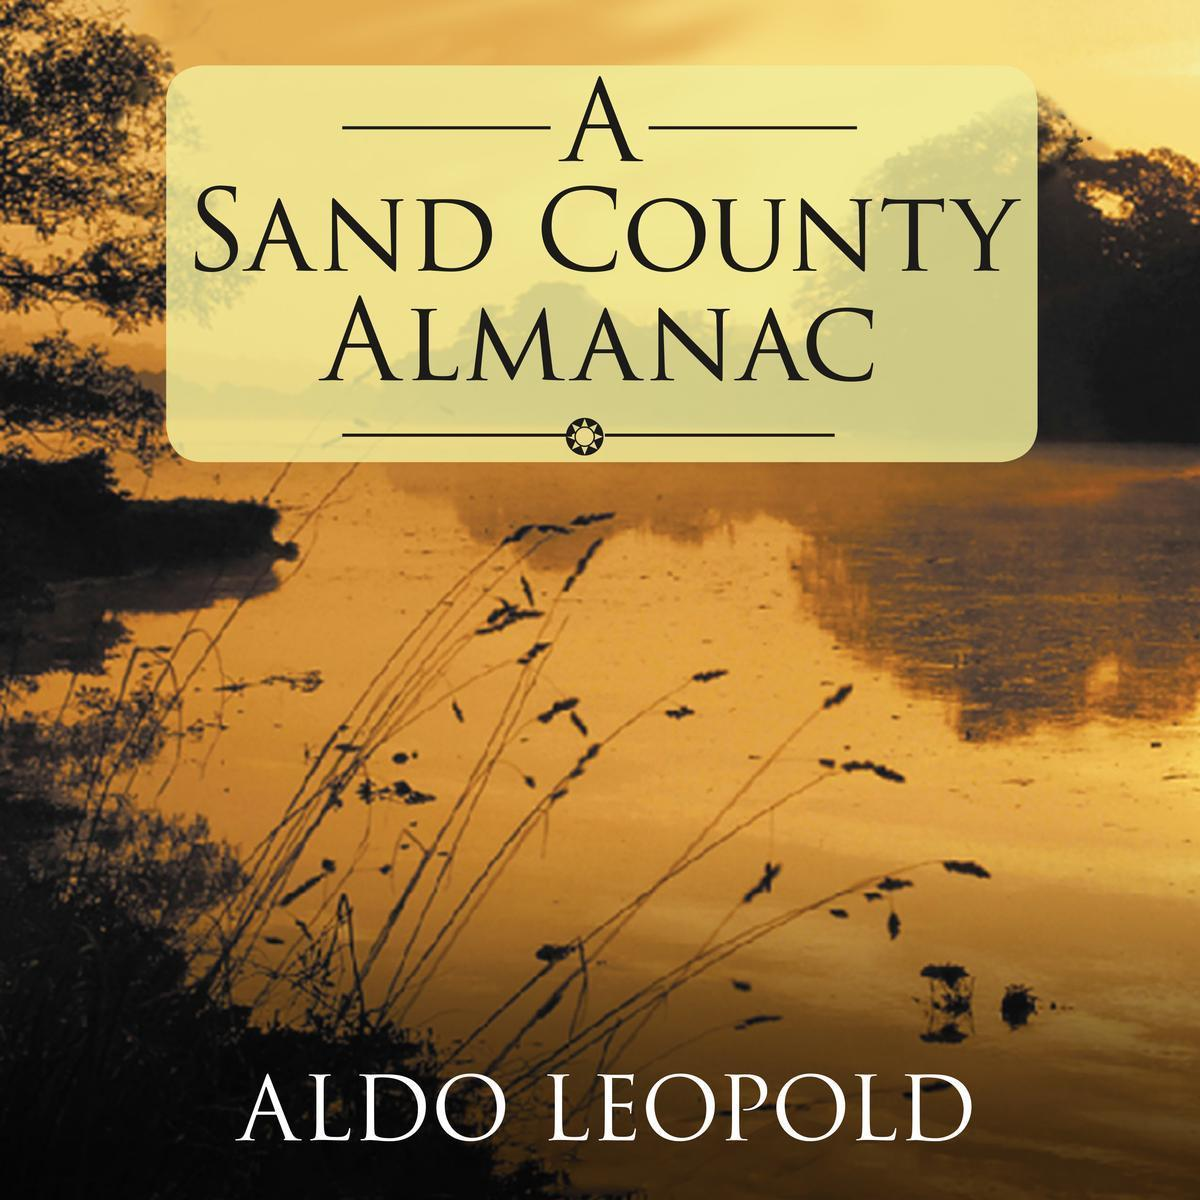 a sand almanac book cover featuring reeds at lake during sunset